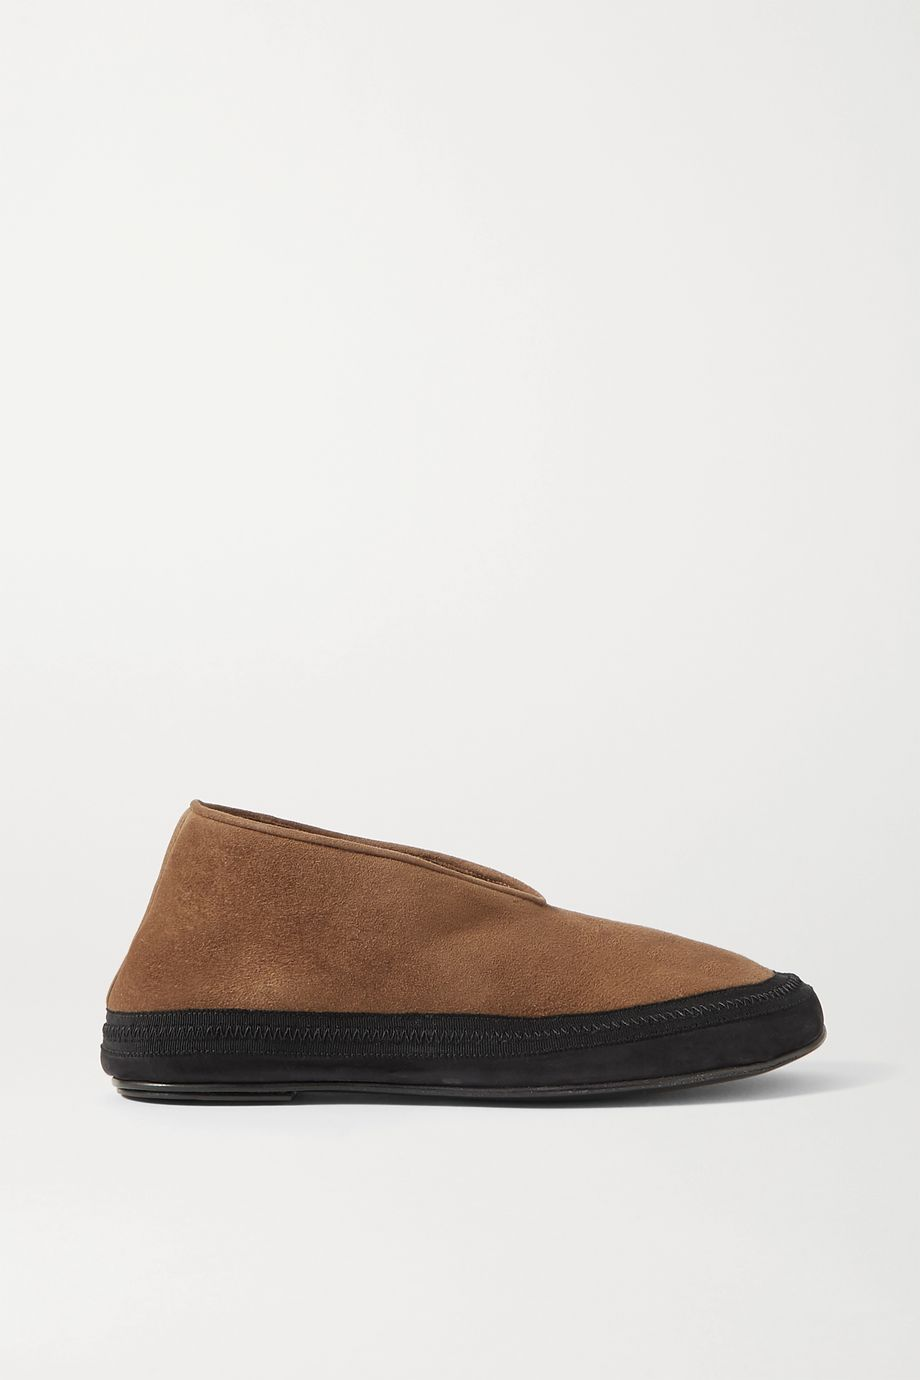 The Row Fairy grosgrain and suede-trimmed shearling slippers